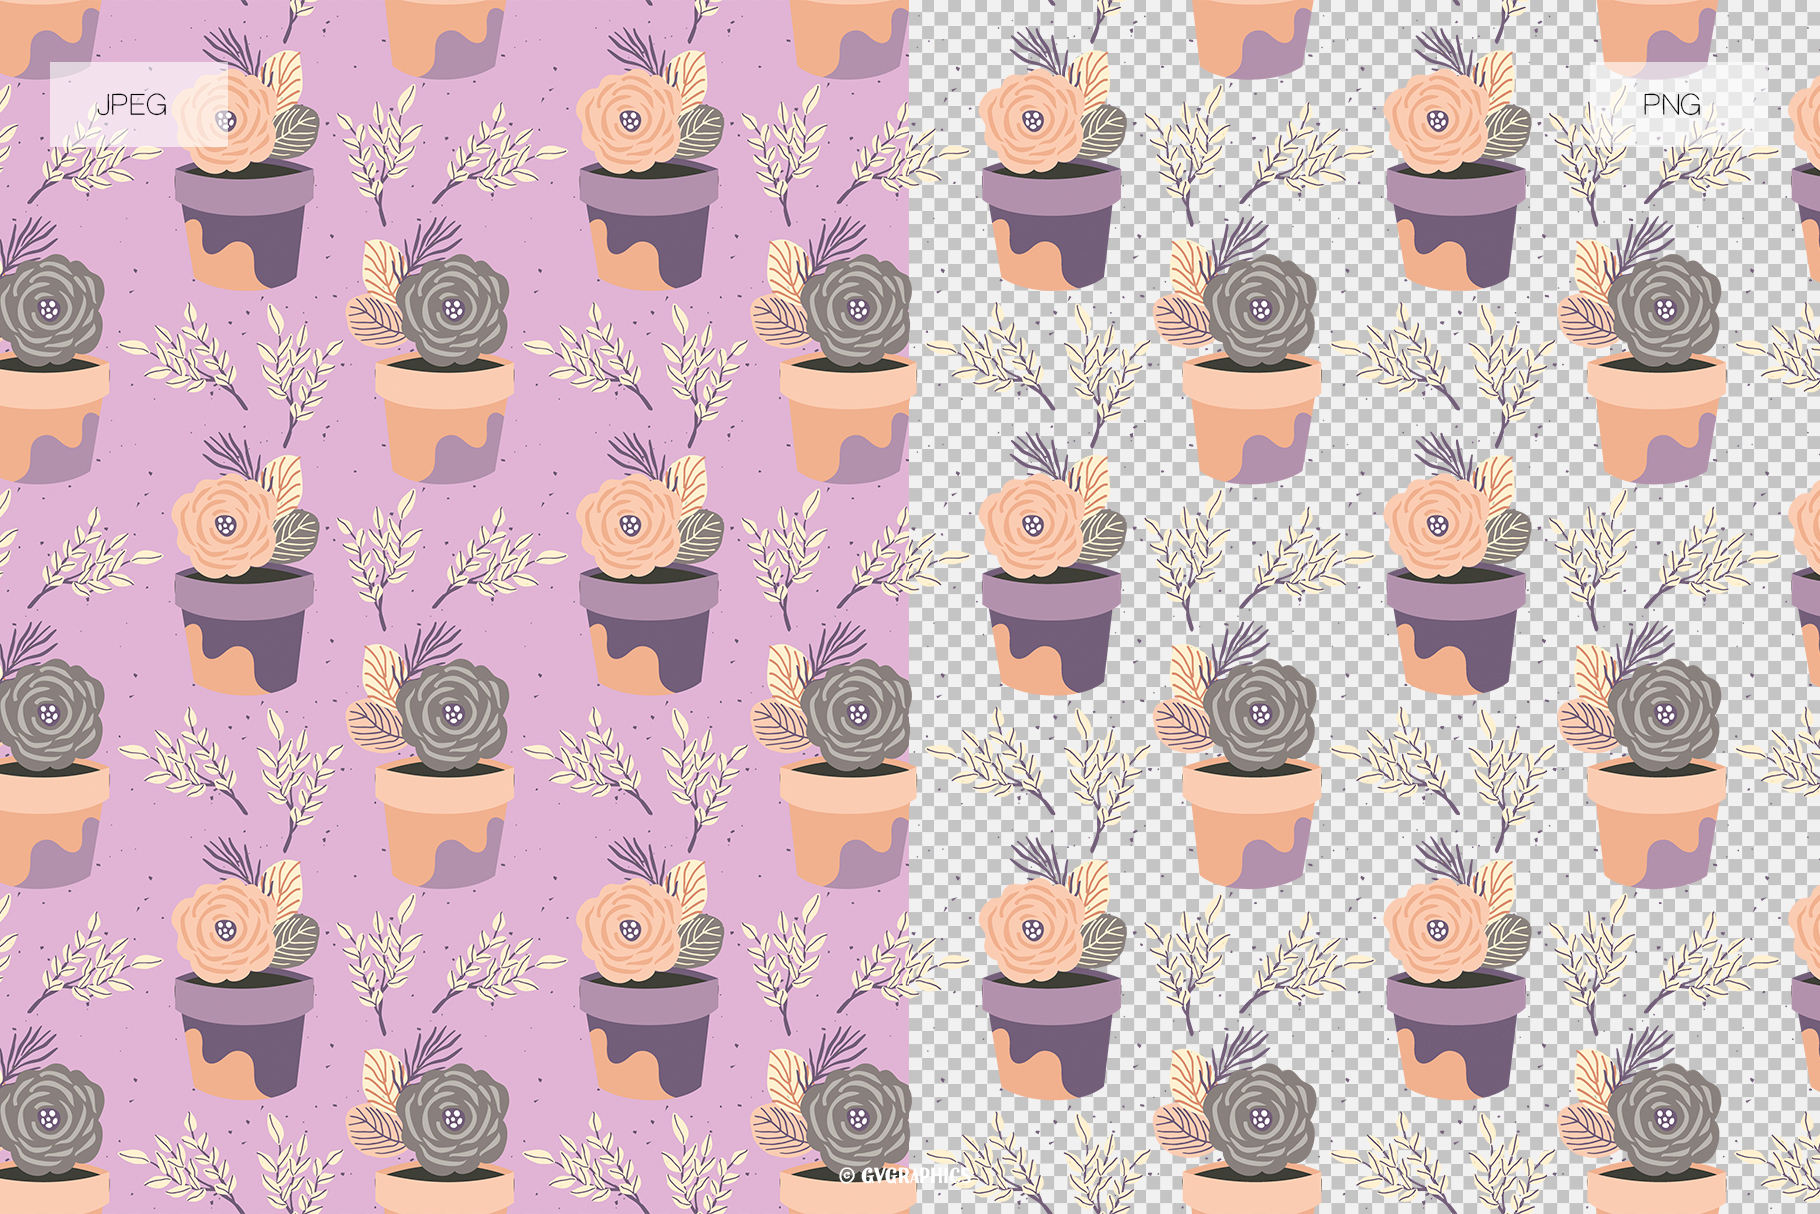 Examples Elegant Flowers Seamless Patterns JPG and PNG